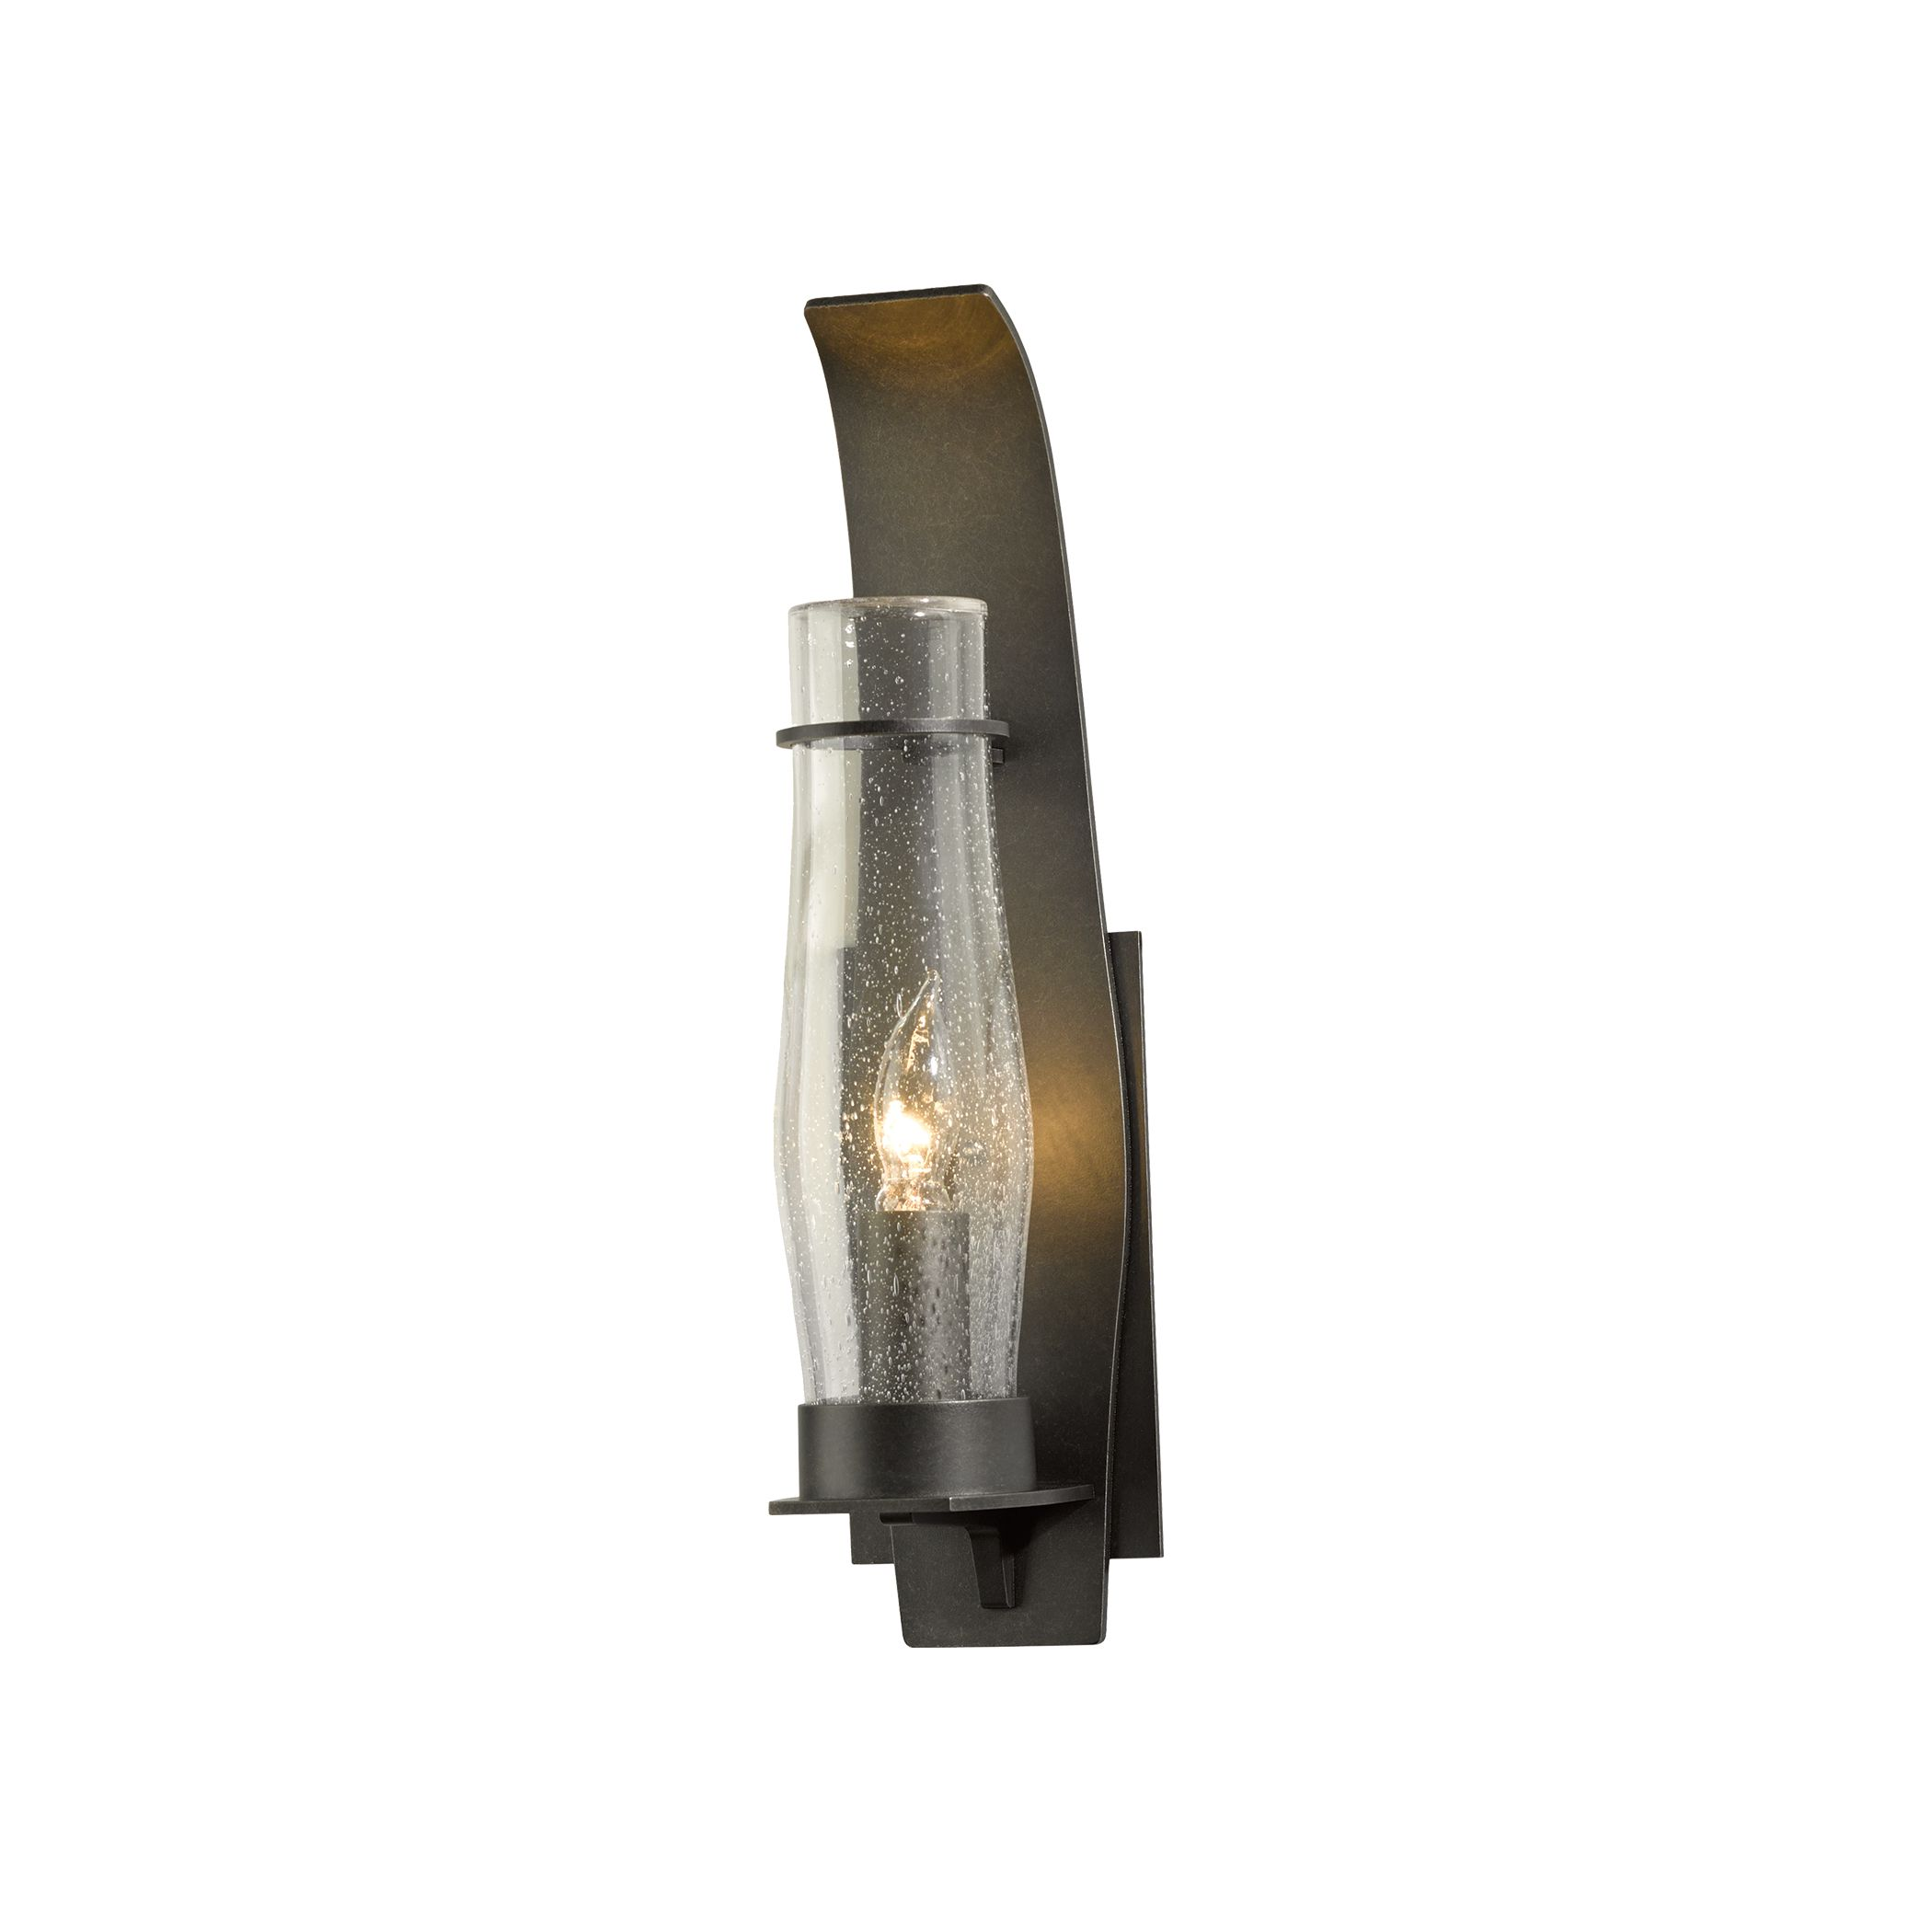 Thumbnail for Sea Coast Outdoor Sconce